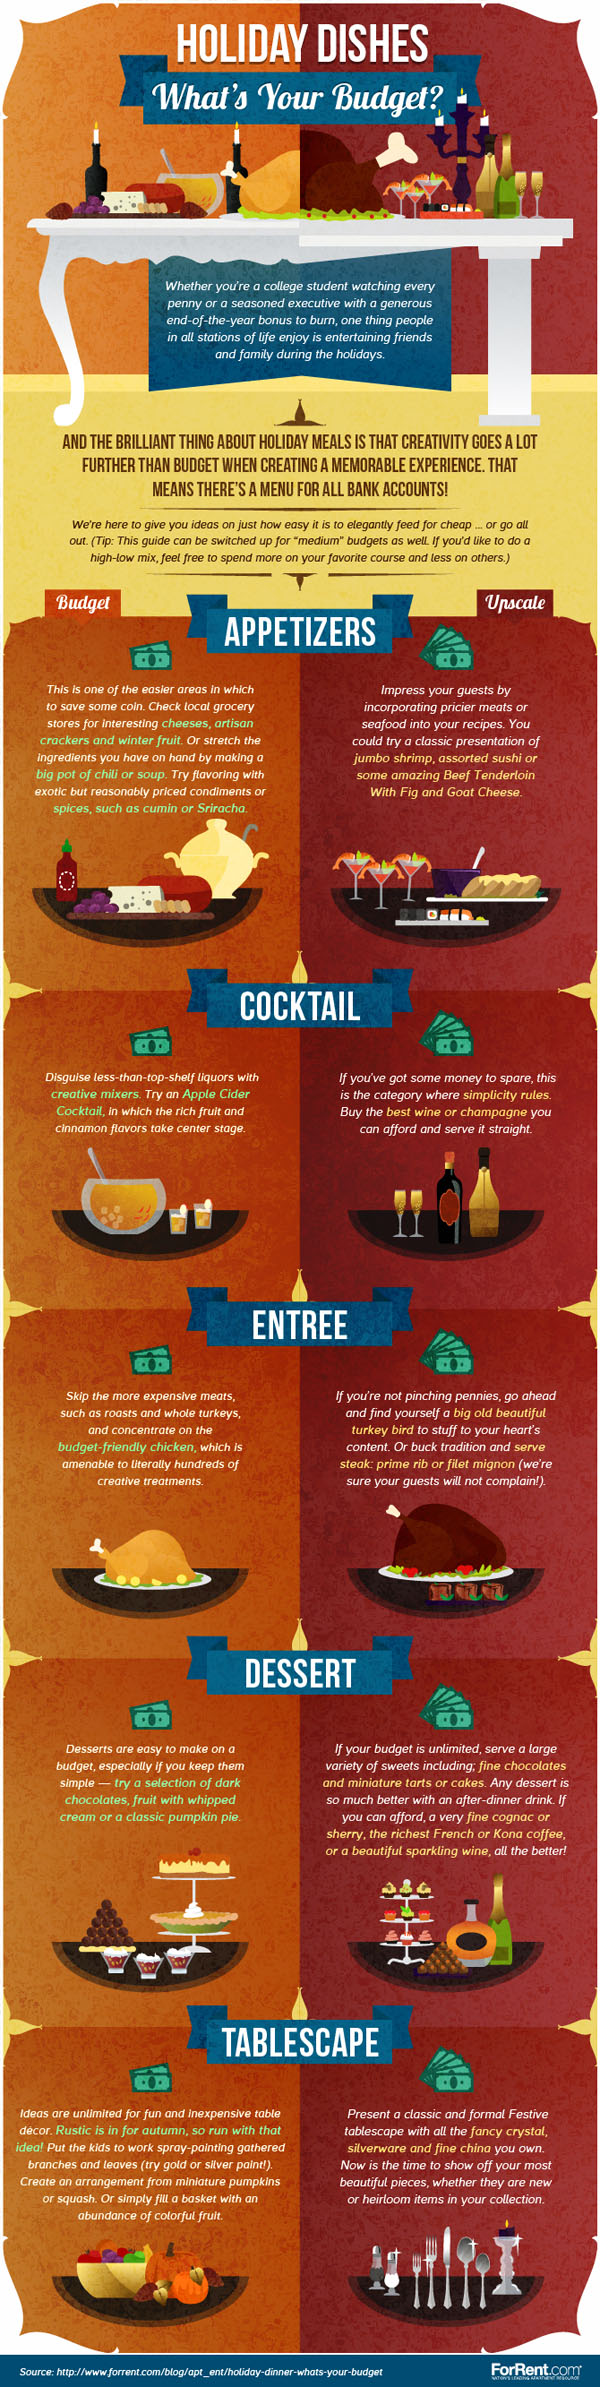 Holiday Dinner: What's Your Budget?